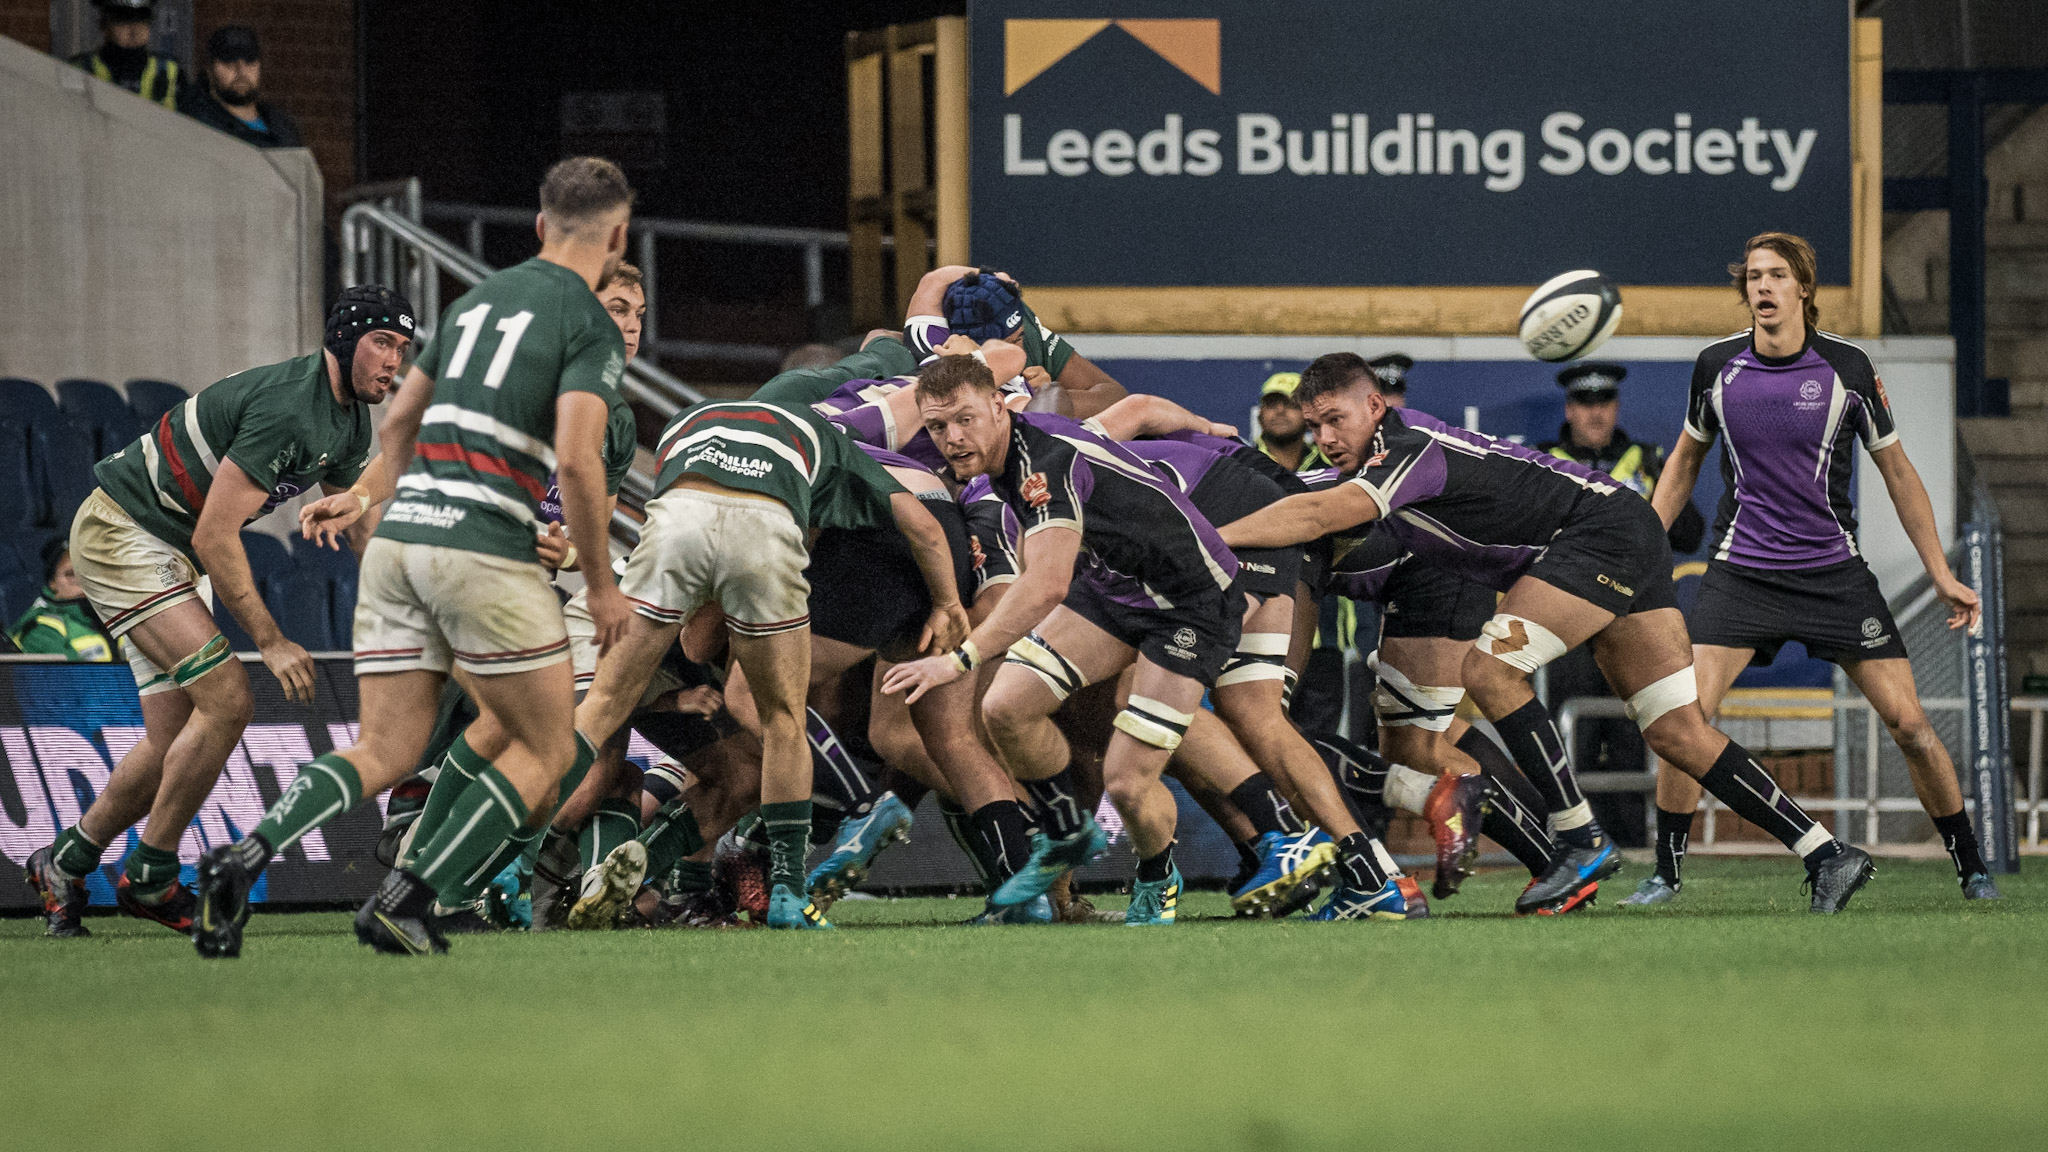 Leeds Beckett to face BUCS Super Rugby leaders Durham